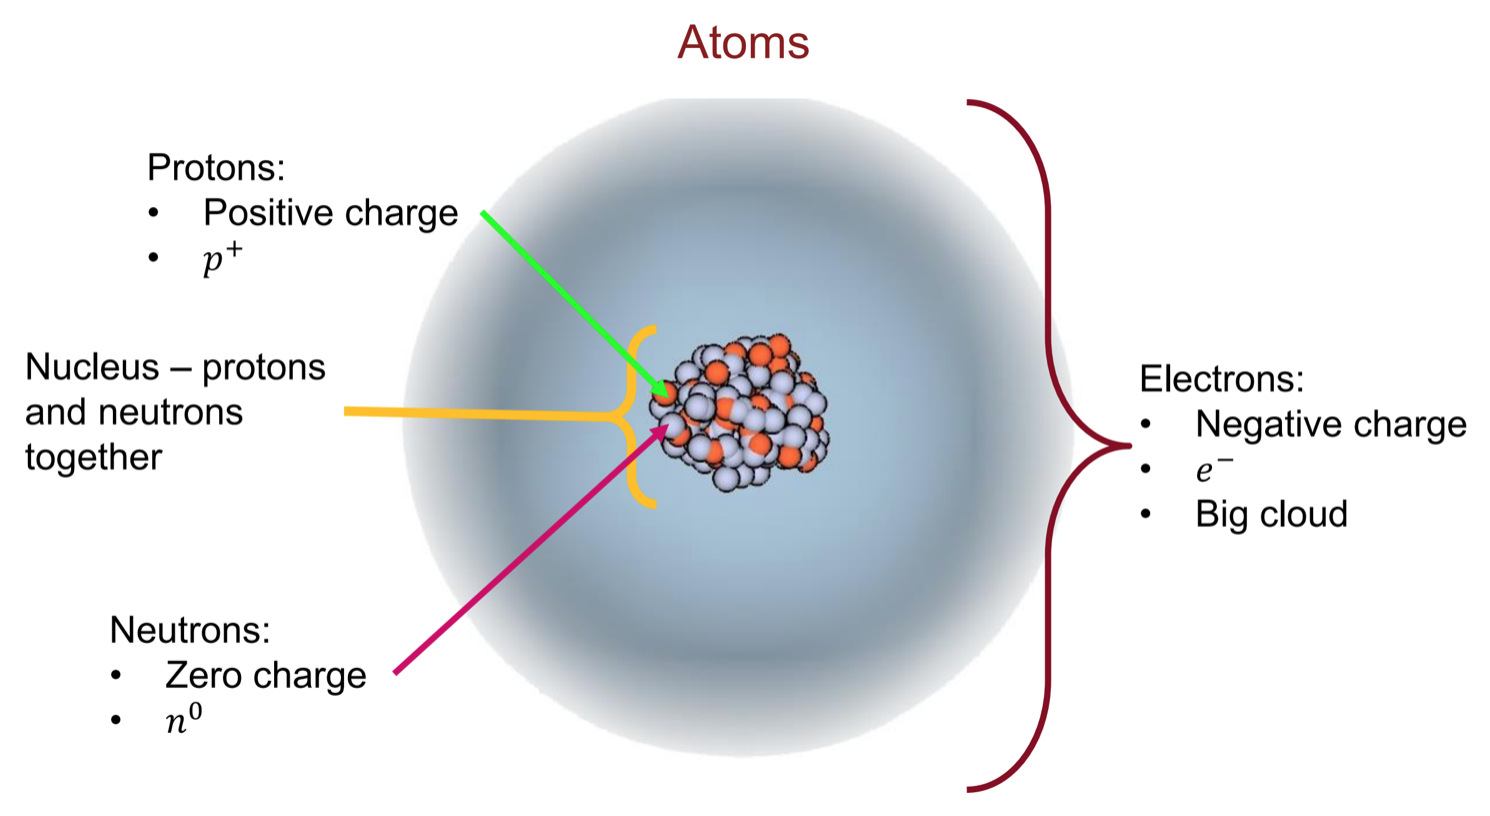 The basic structure of the Atom.